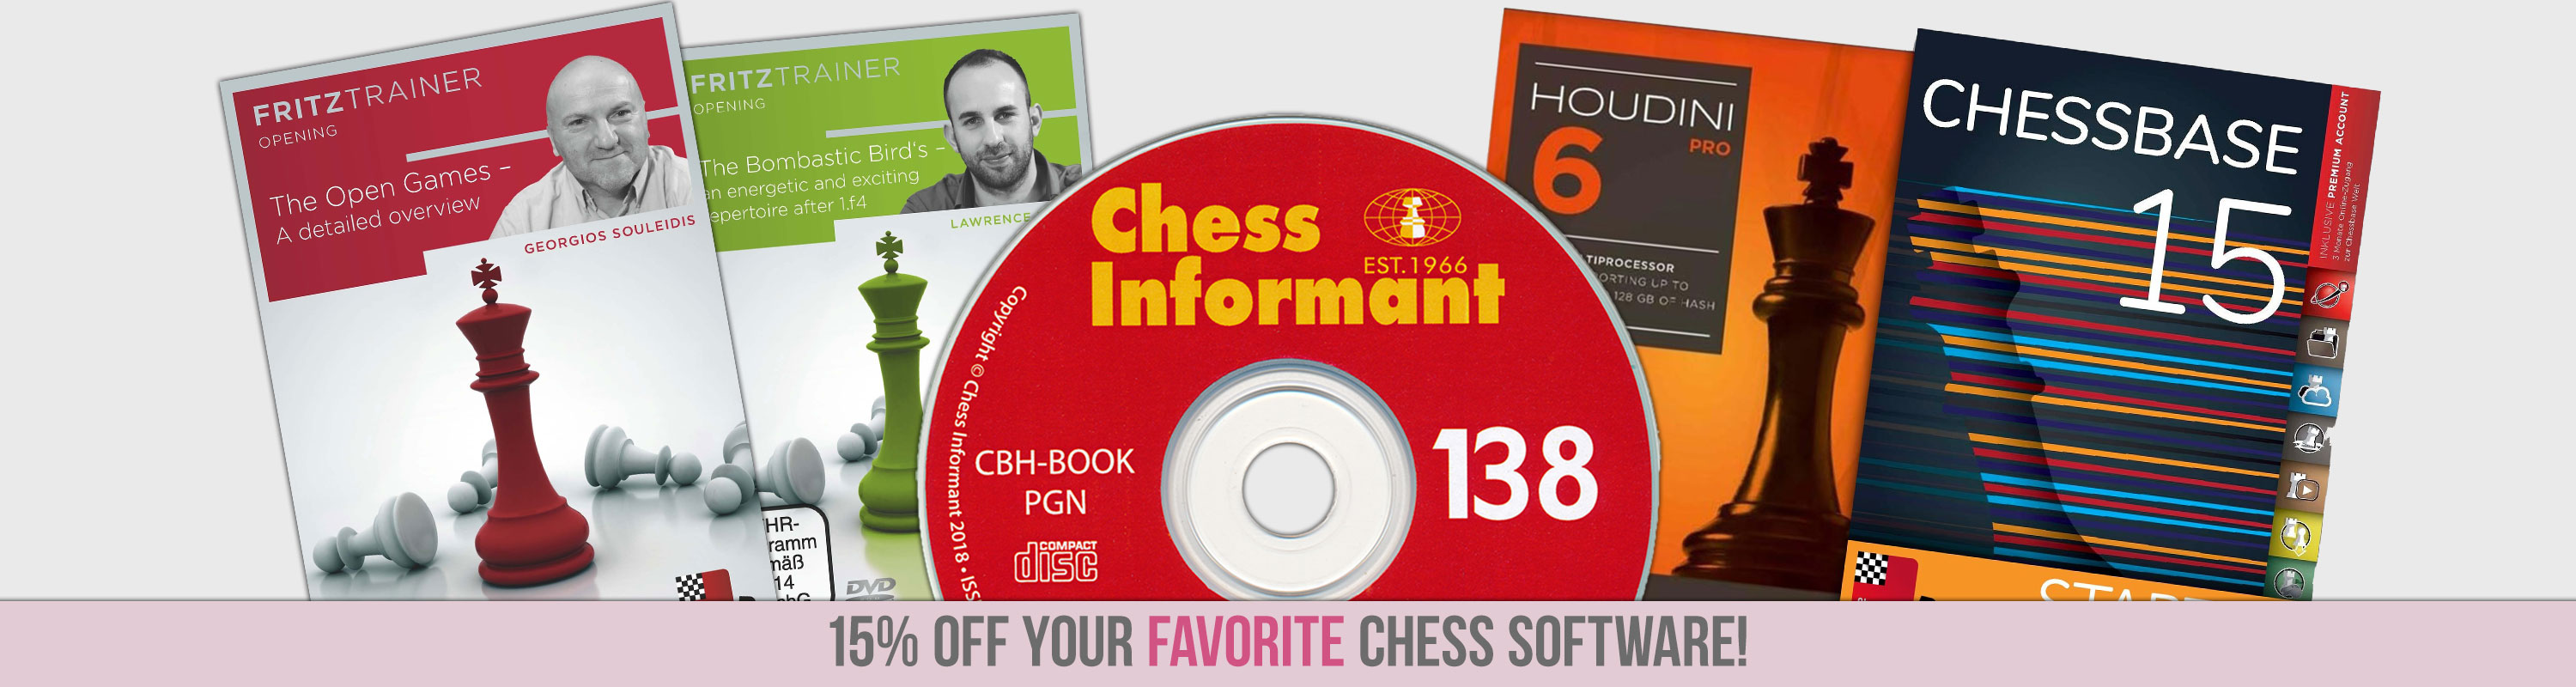 15% Off Chess Software